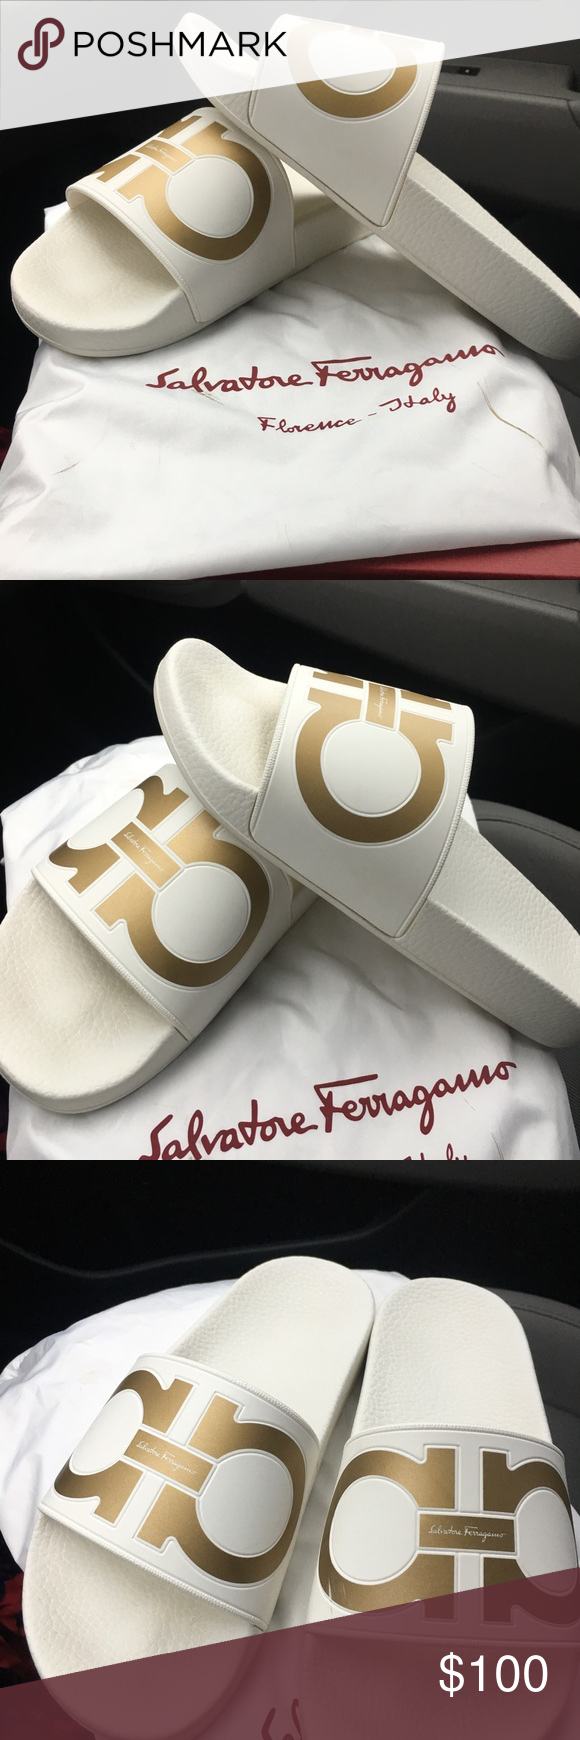 97971695d81e Ferragamo slides White and gold Salvatore Ferragamo slides (unisex) Only  worn twice Ferragamo Shoes